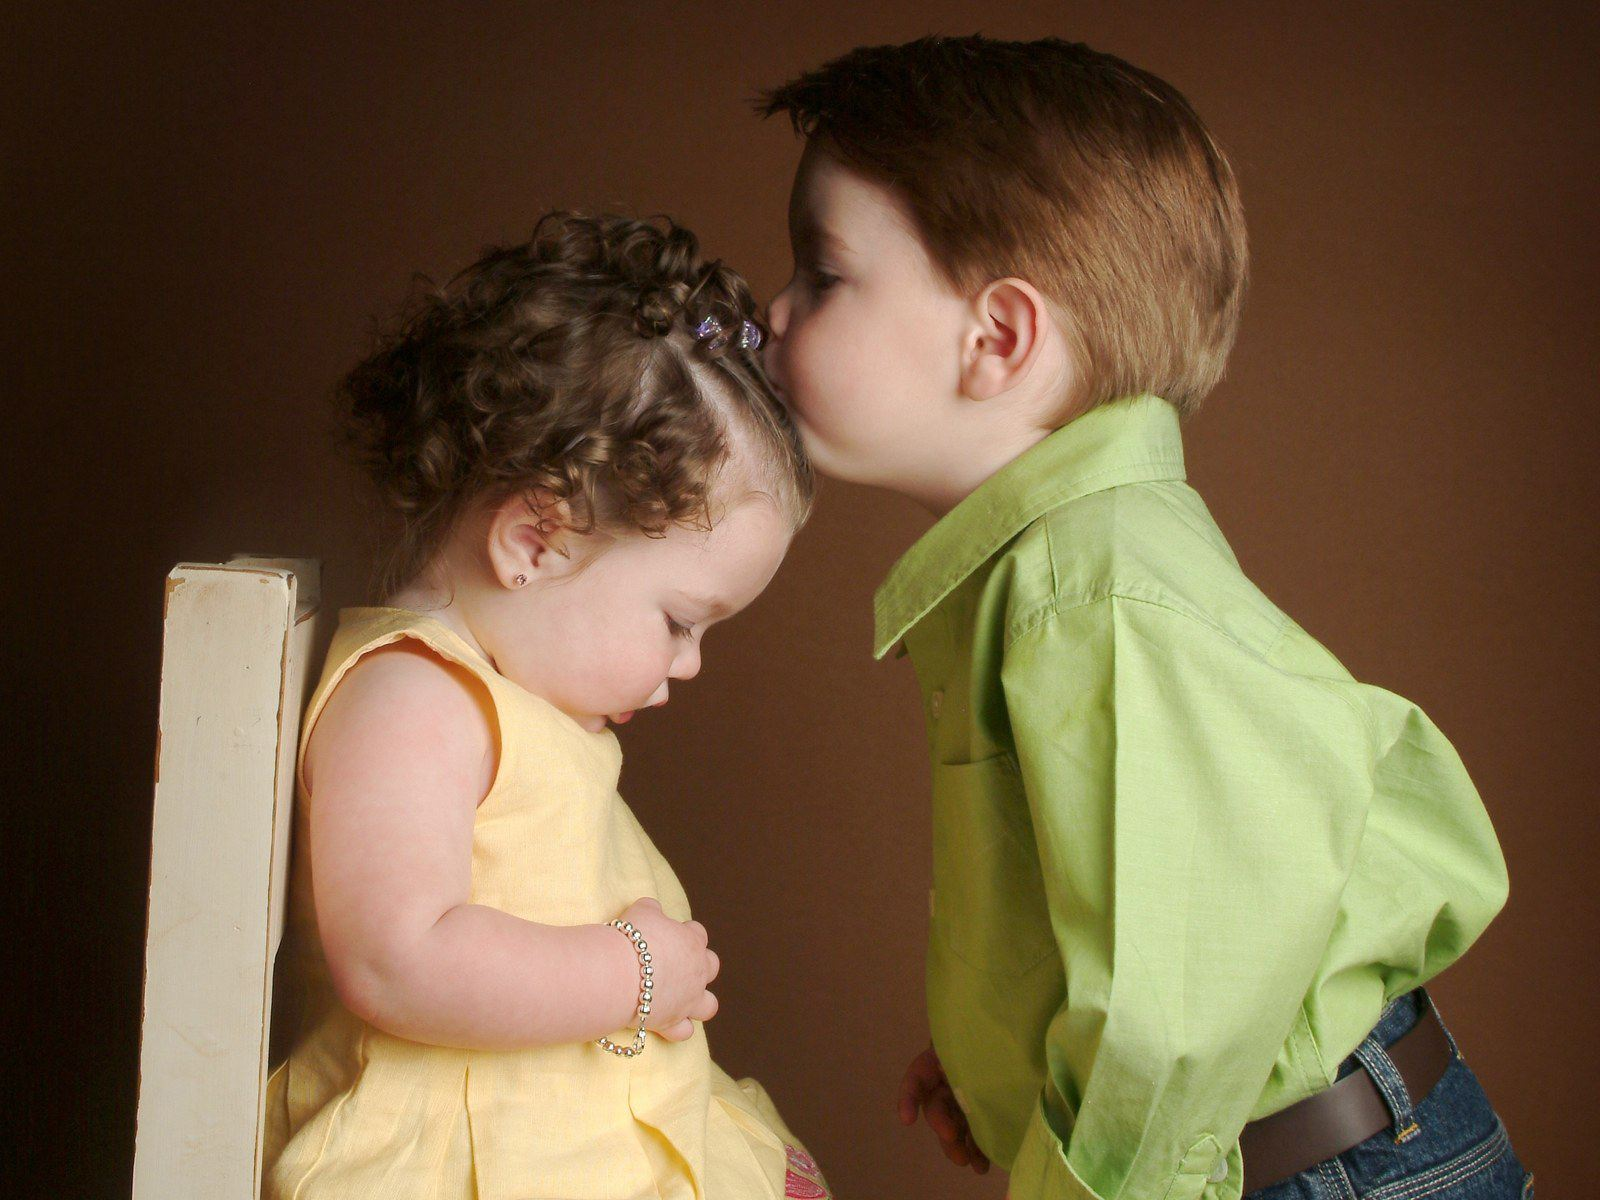 Cute Little Baby Girl And Boy Kissing HD Wallpaper 1600 x 1200 1600x1200